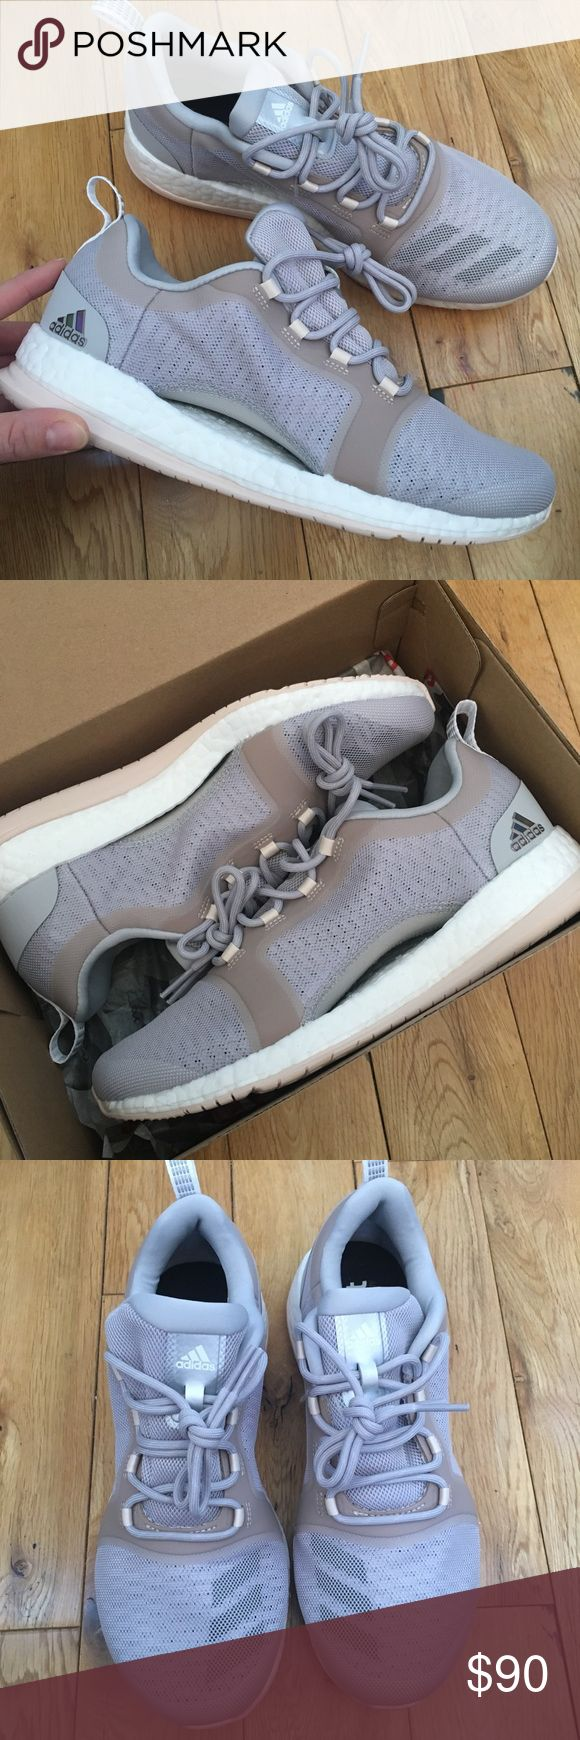 Adidas PURE BOOST X Trainer 2.0 Shoes Brand new, never worn adidas pure boost sneakers. Super comfortable, neutral colors— Grey/Running White. Size 6.5 Adidas Shoes Sneakers